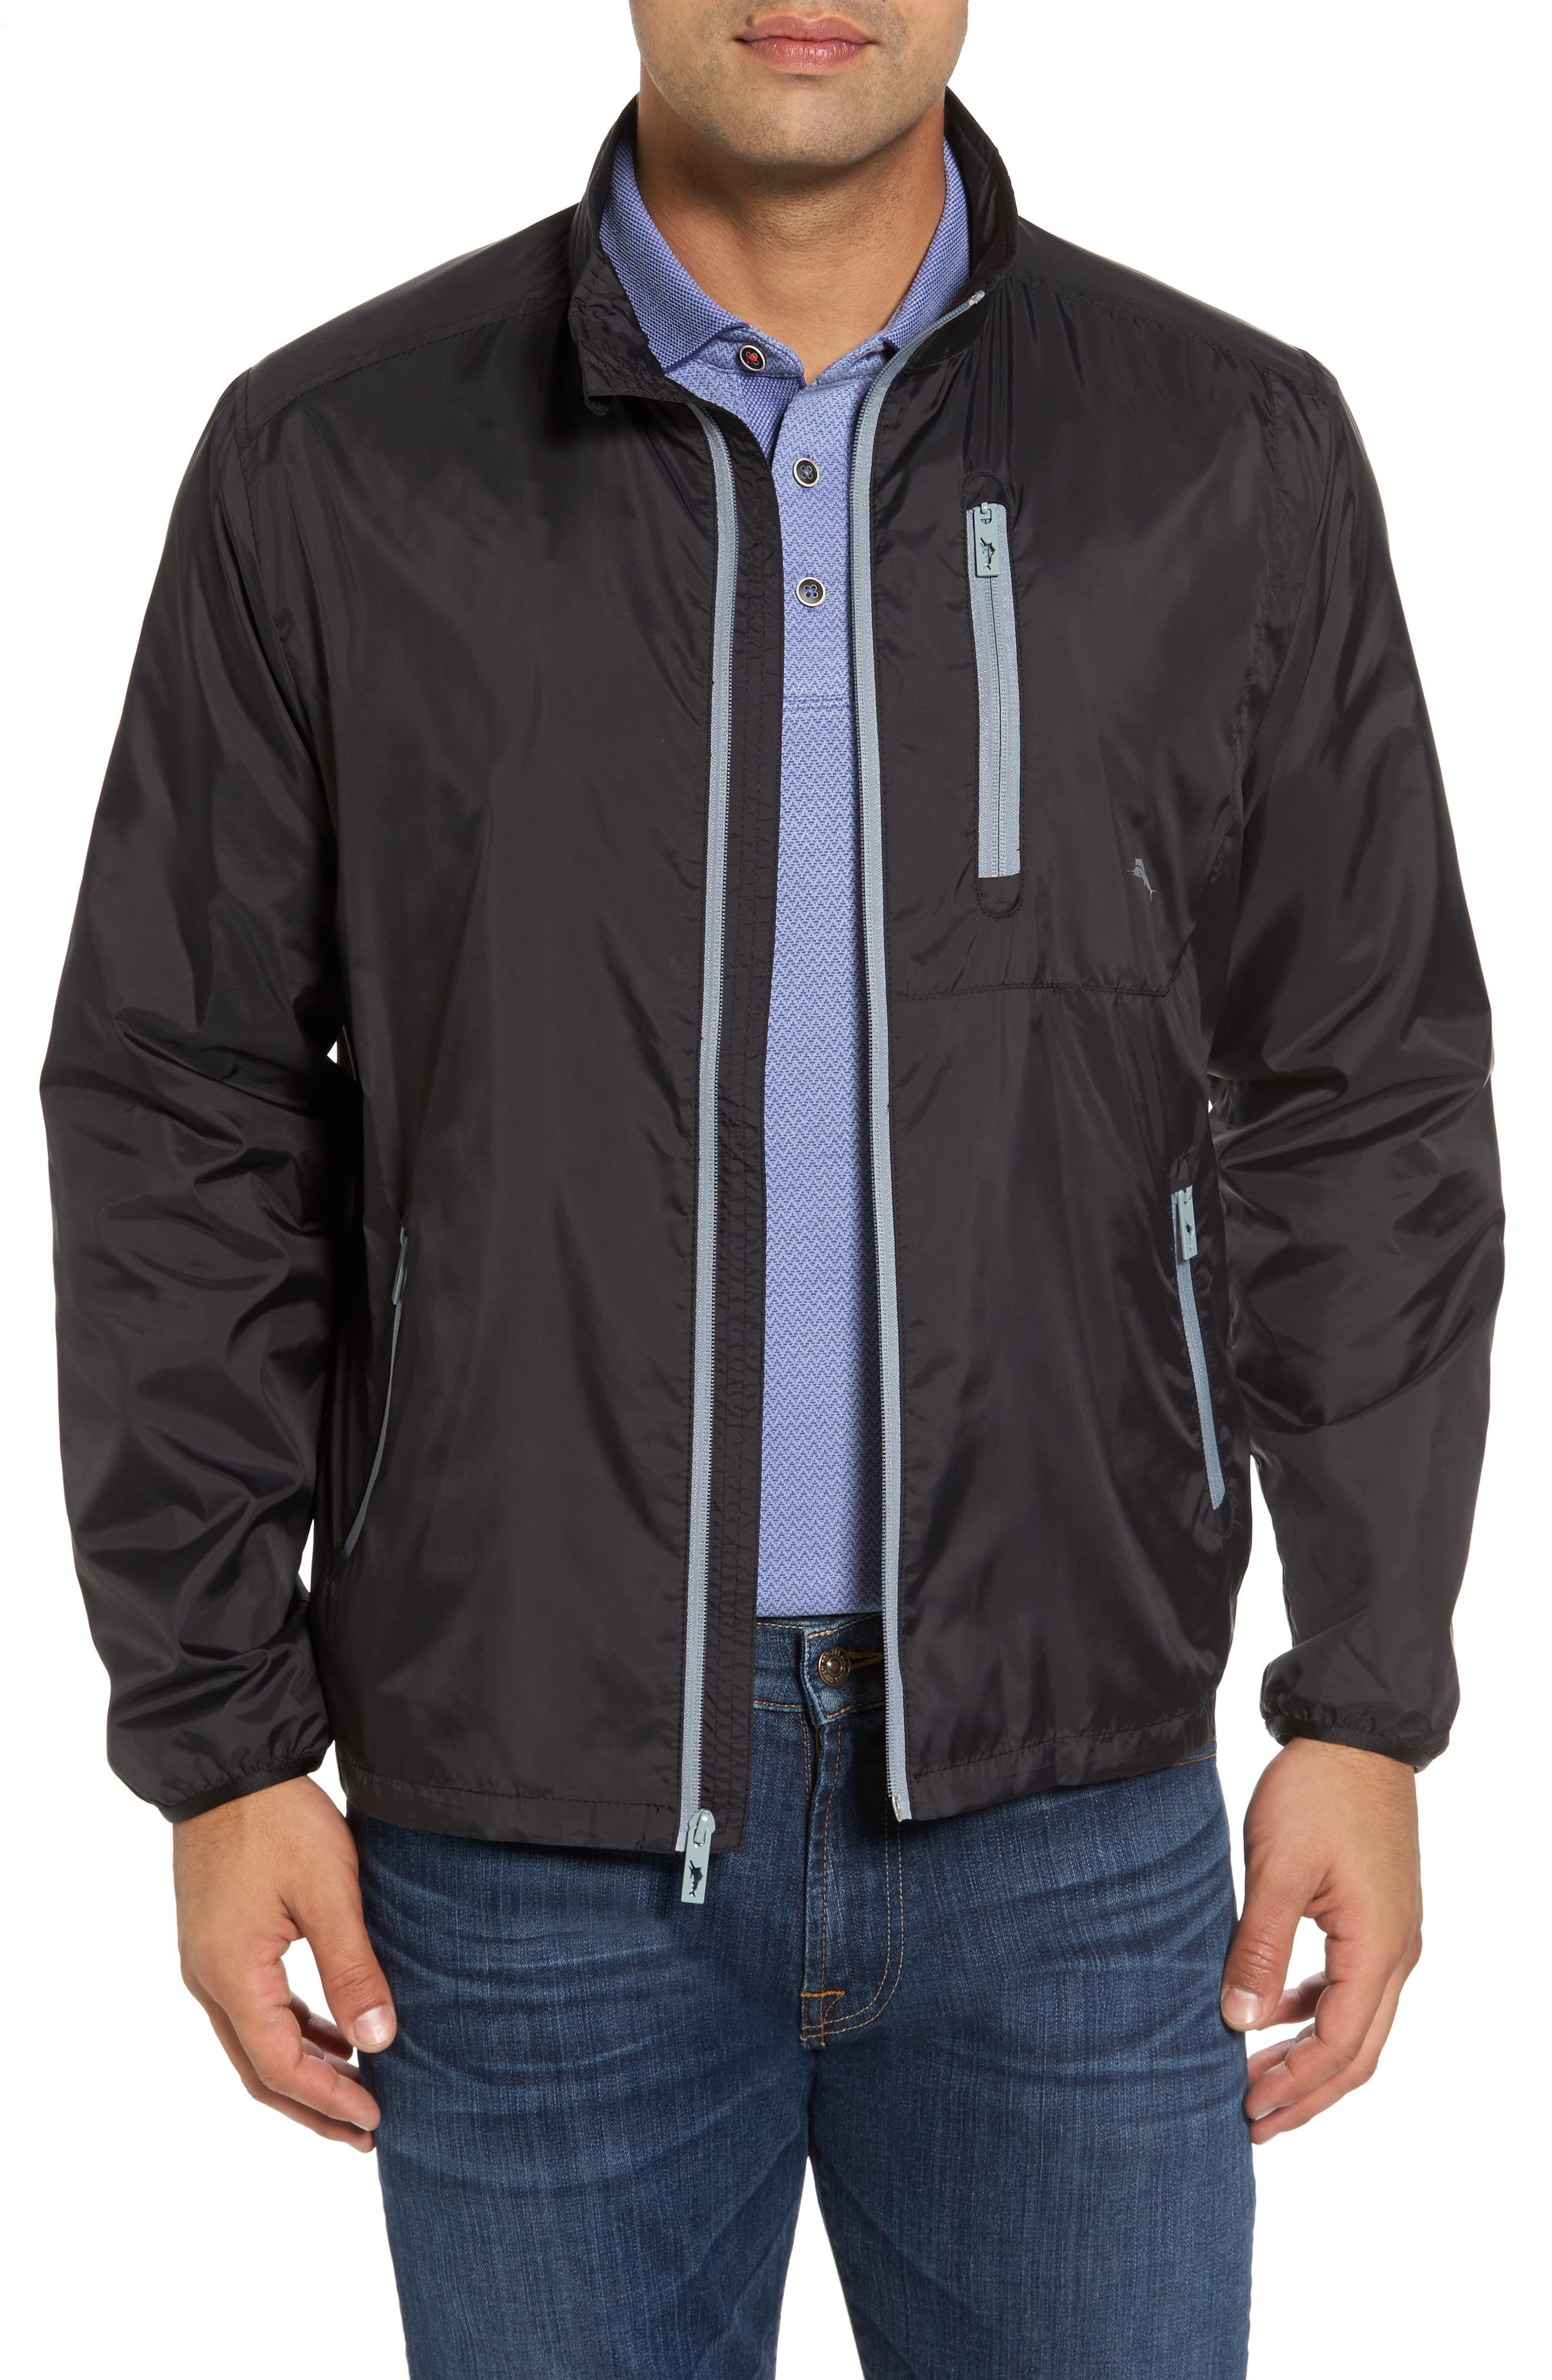 Alternate Image 1 Selected - Tommy Bahama Nine Iron Water-Repellent Jacket